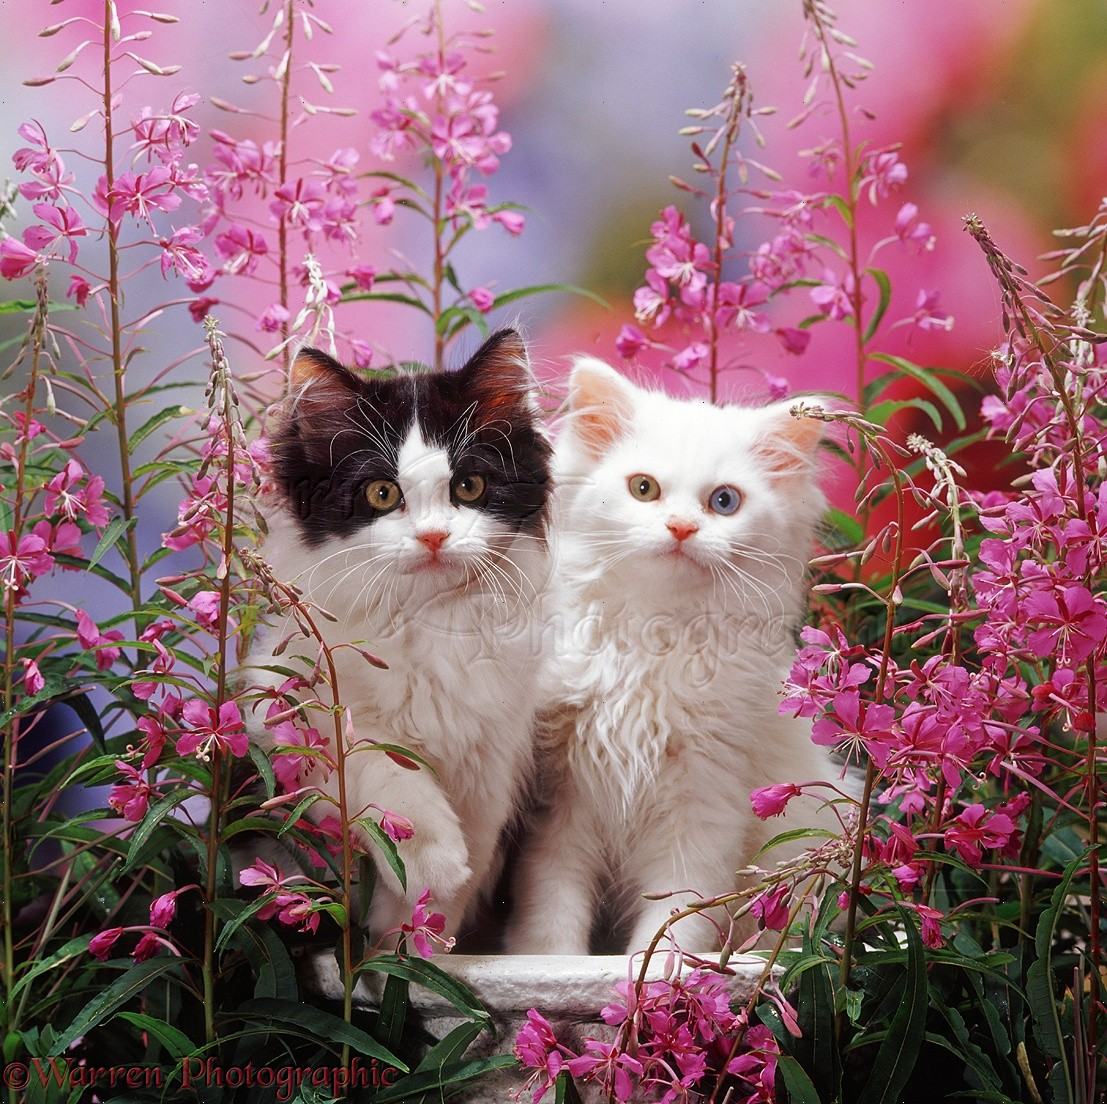 Flowers pink white and black and white kittens among pink flowers dhlflorist Choice Image